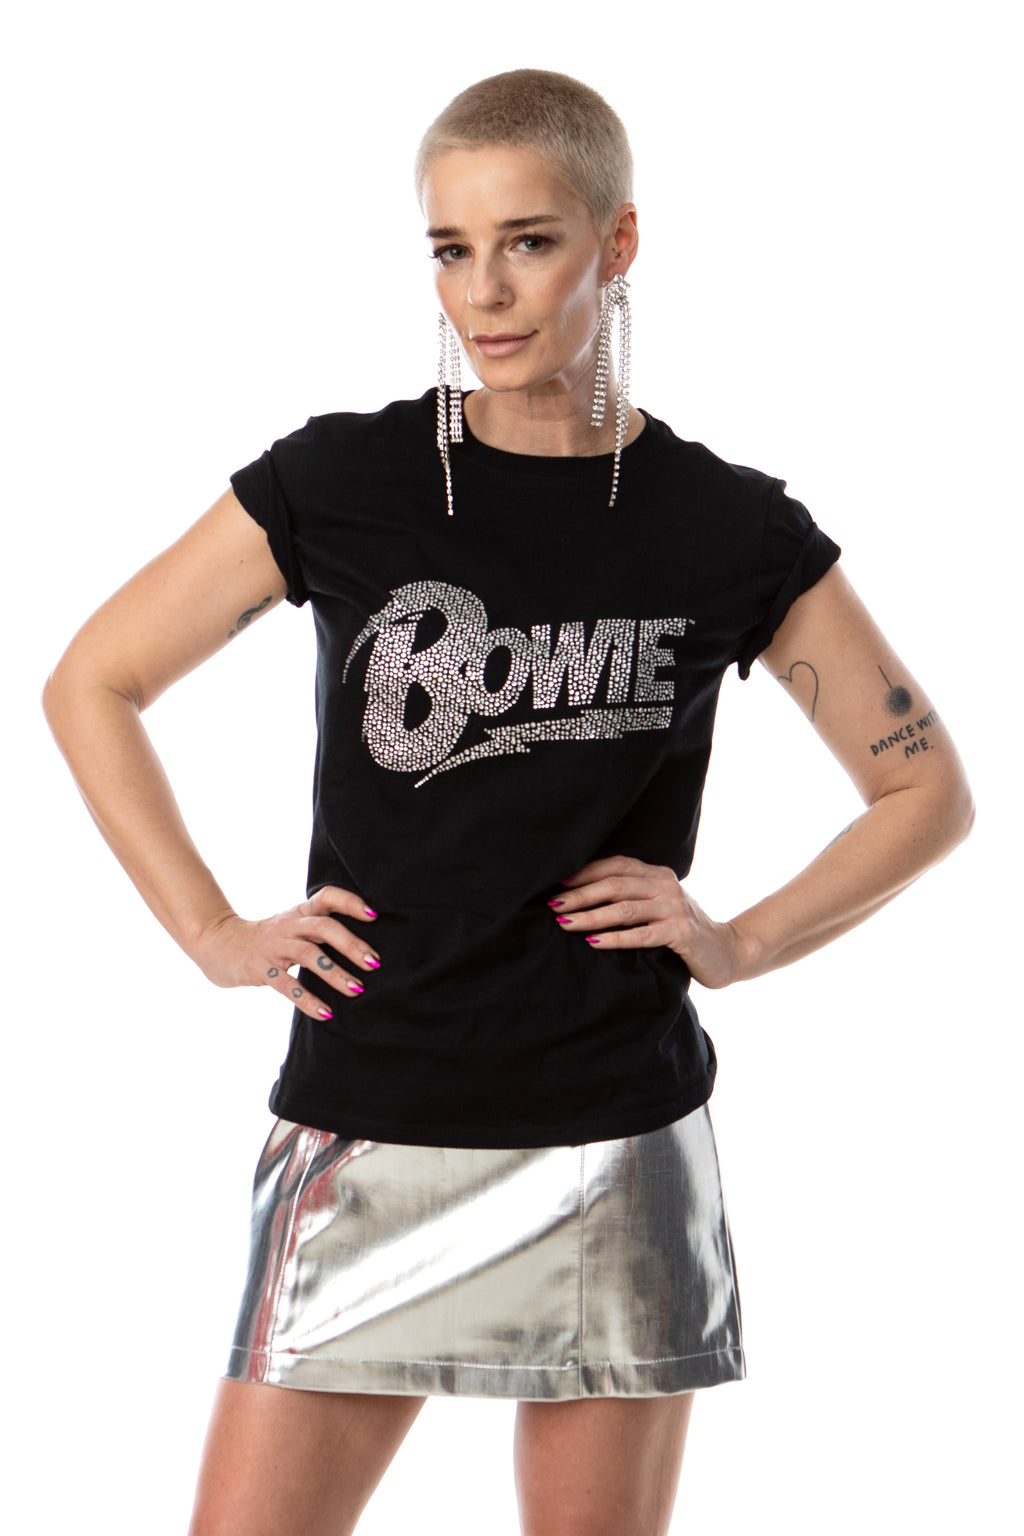 David Bowie Flash Logo tee